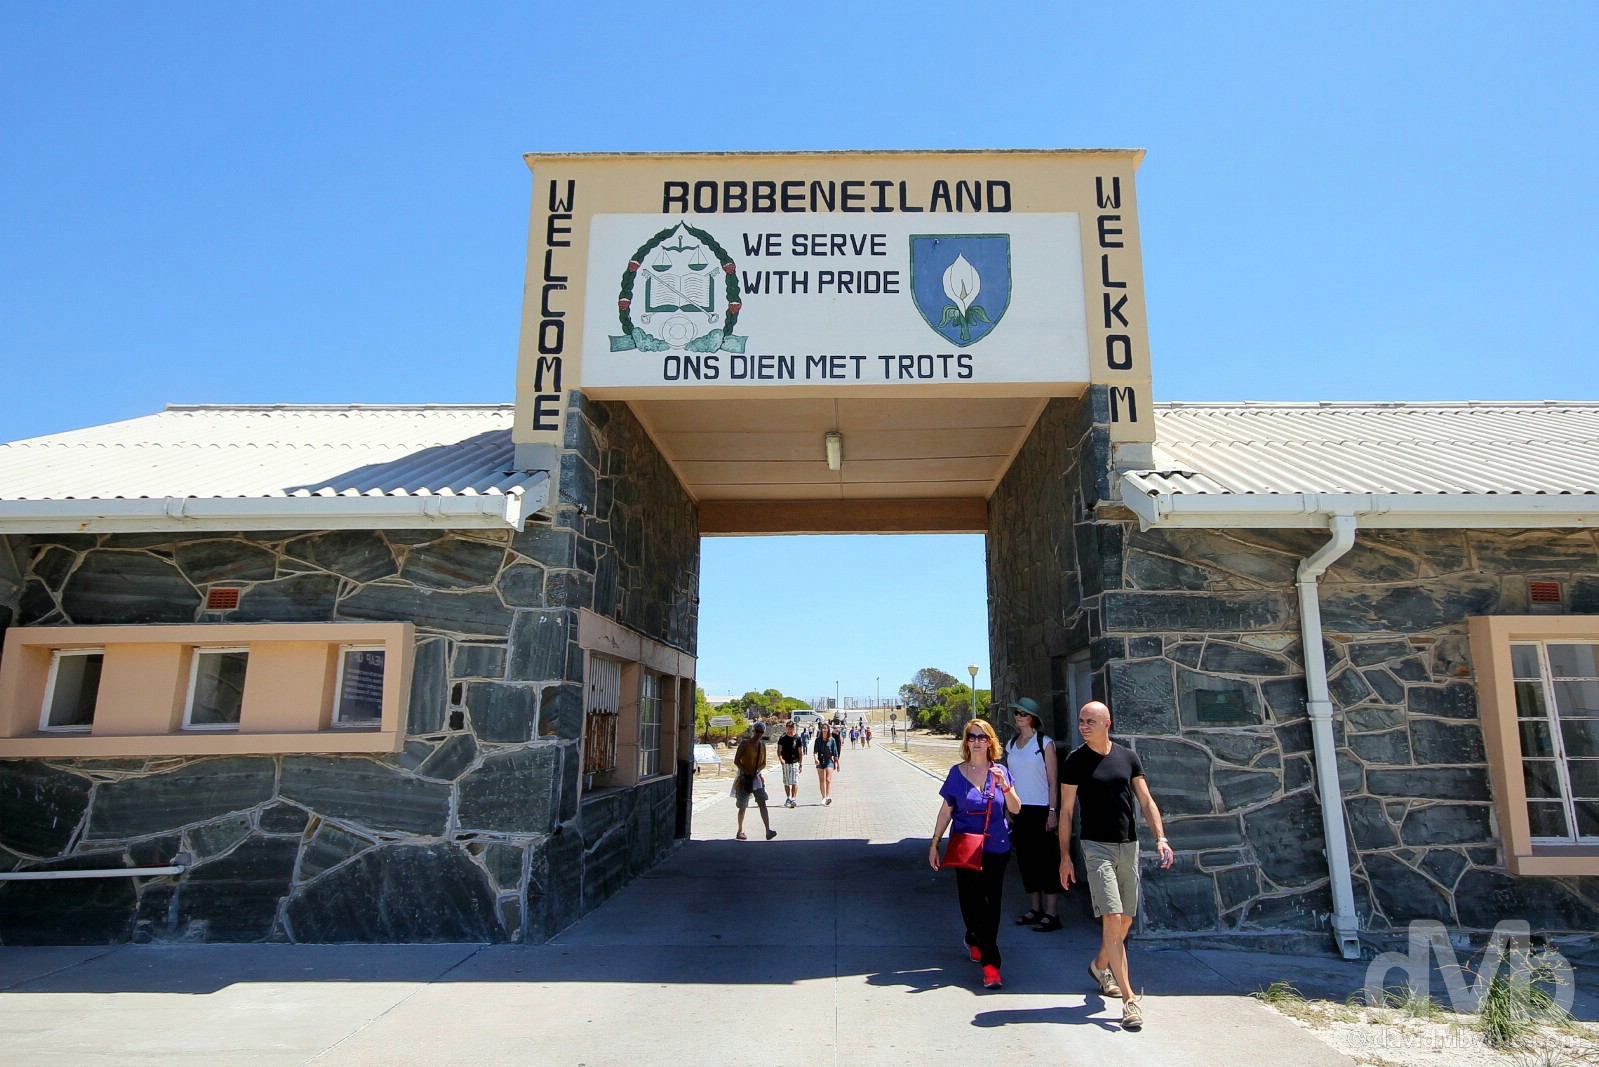 The entrance to Robben Island, Table Bay, Western Cape, South Africa. February 22, 2017.